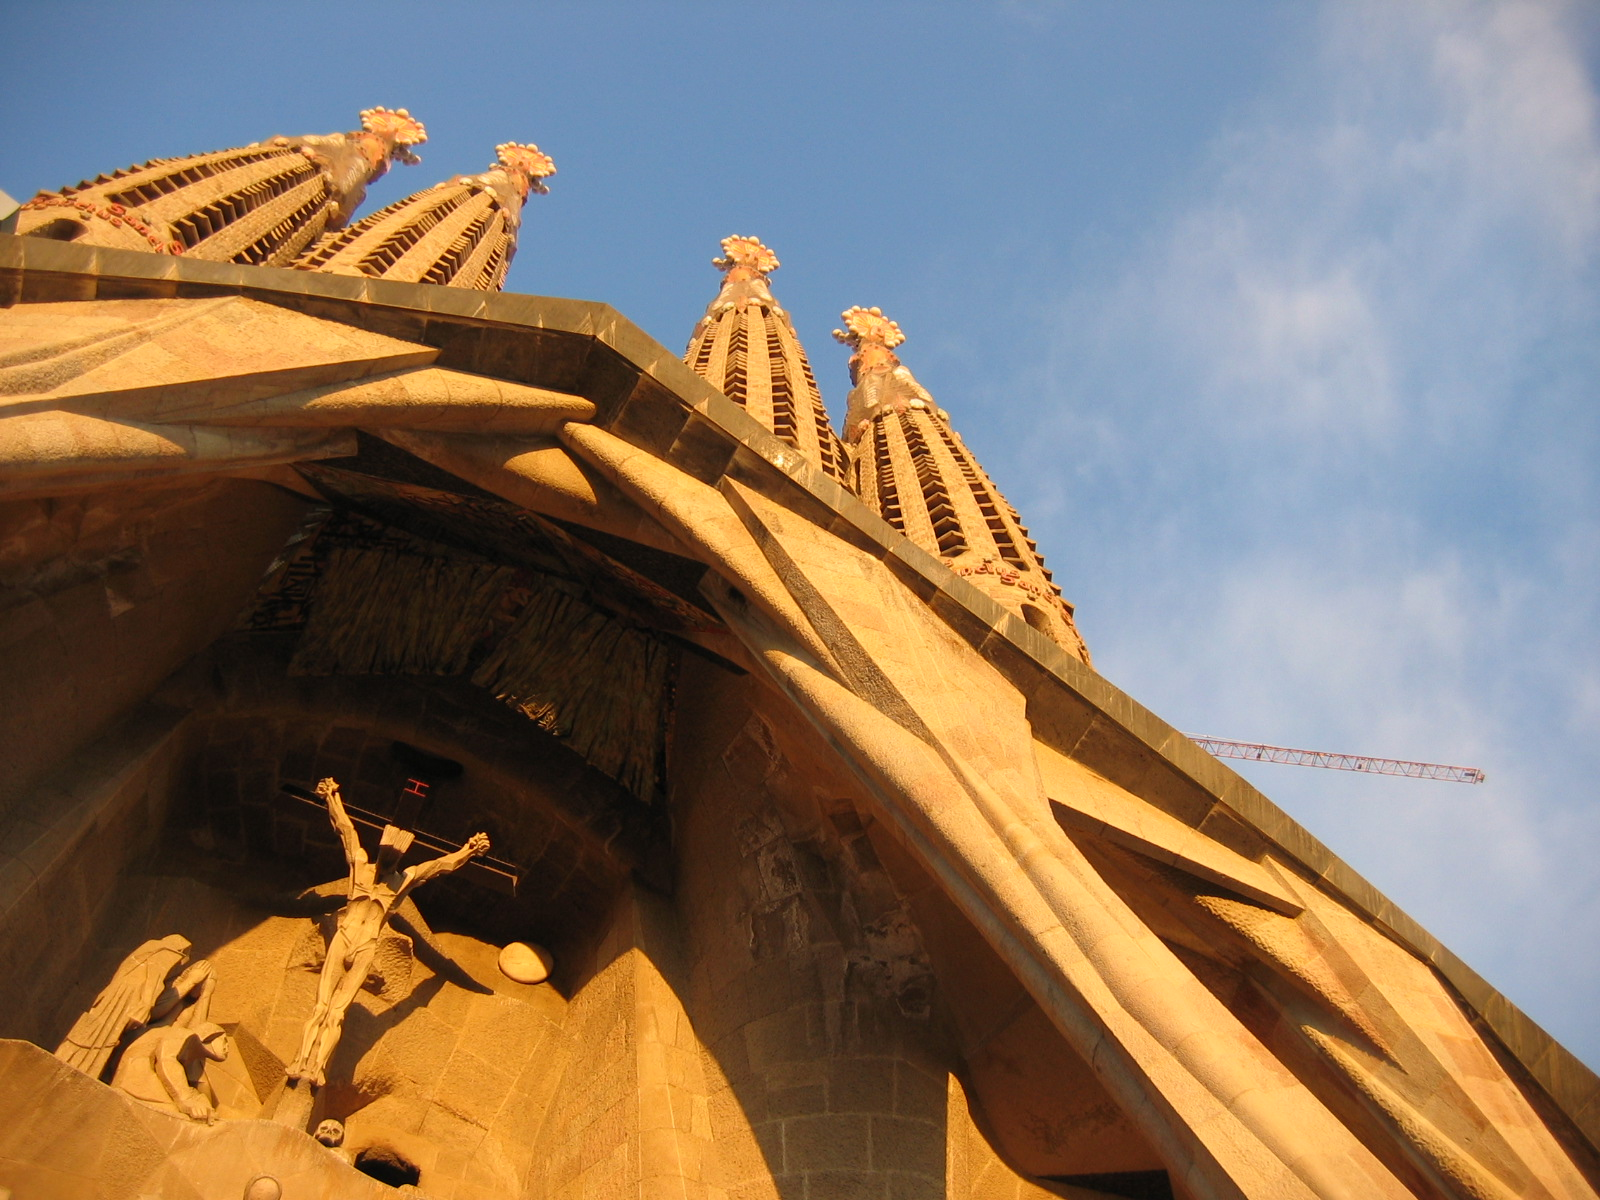 Barcelona Architecture, Spain, Sagrada Familia Crucifix